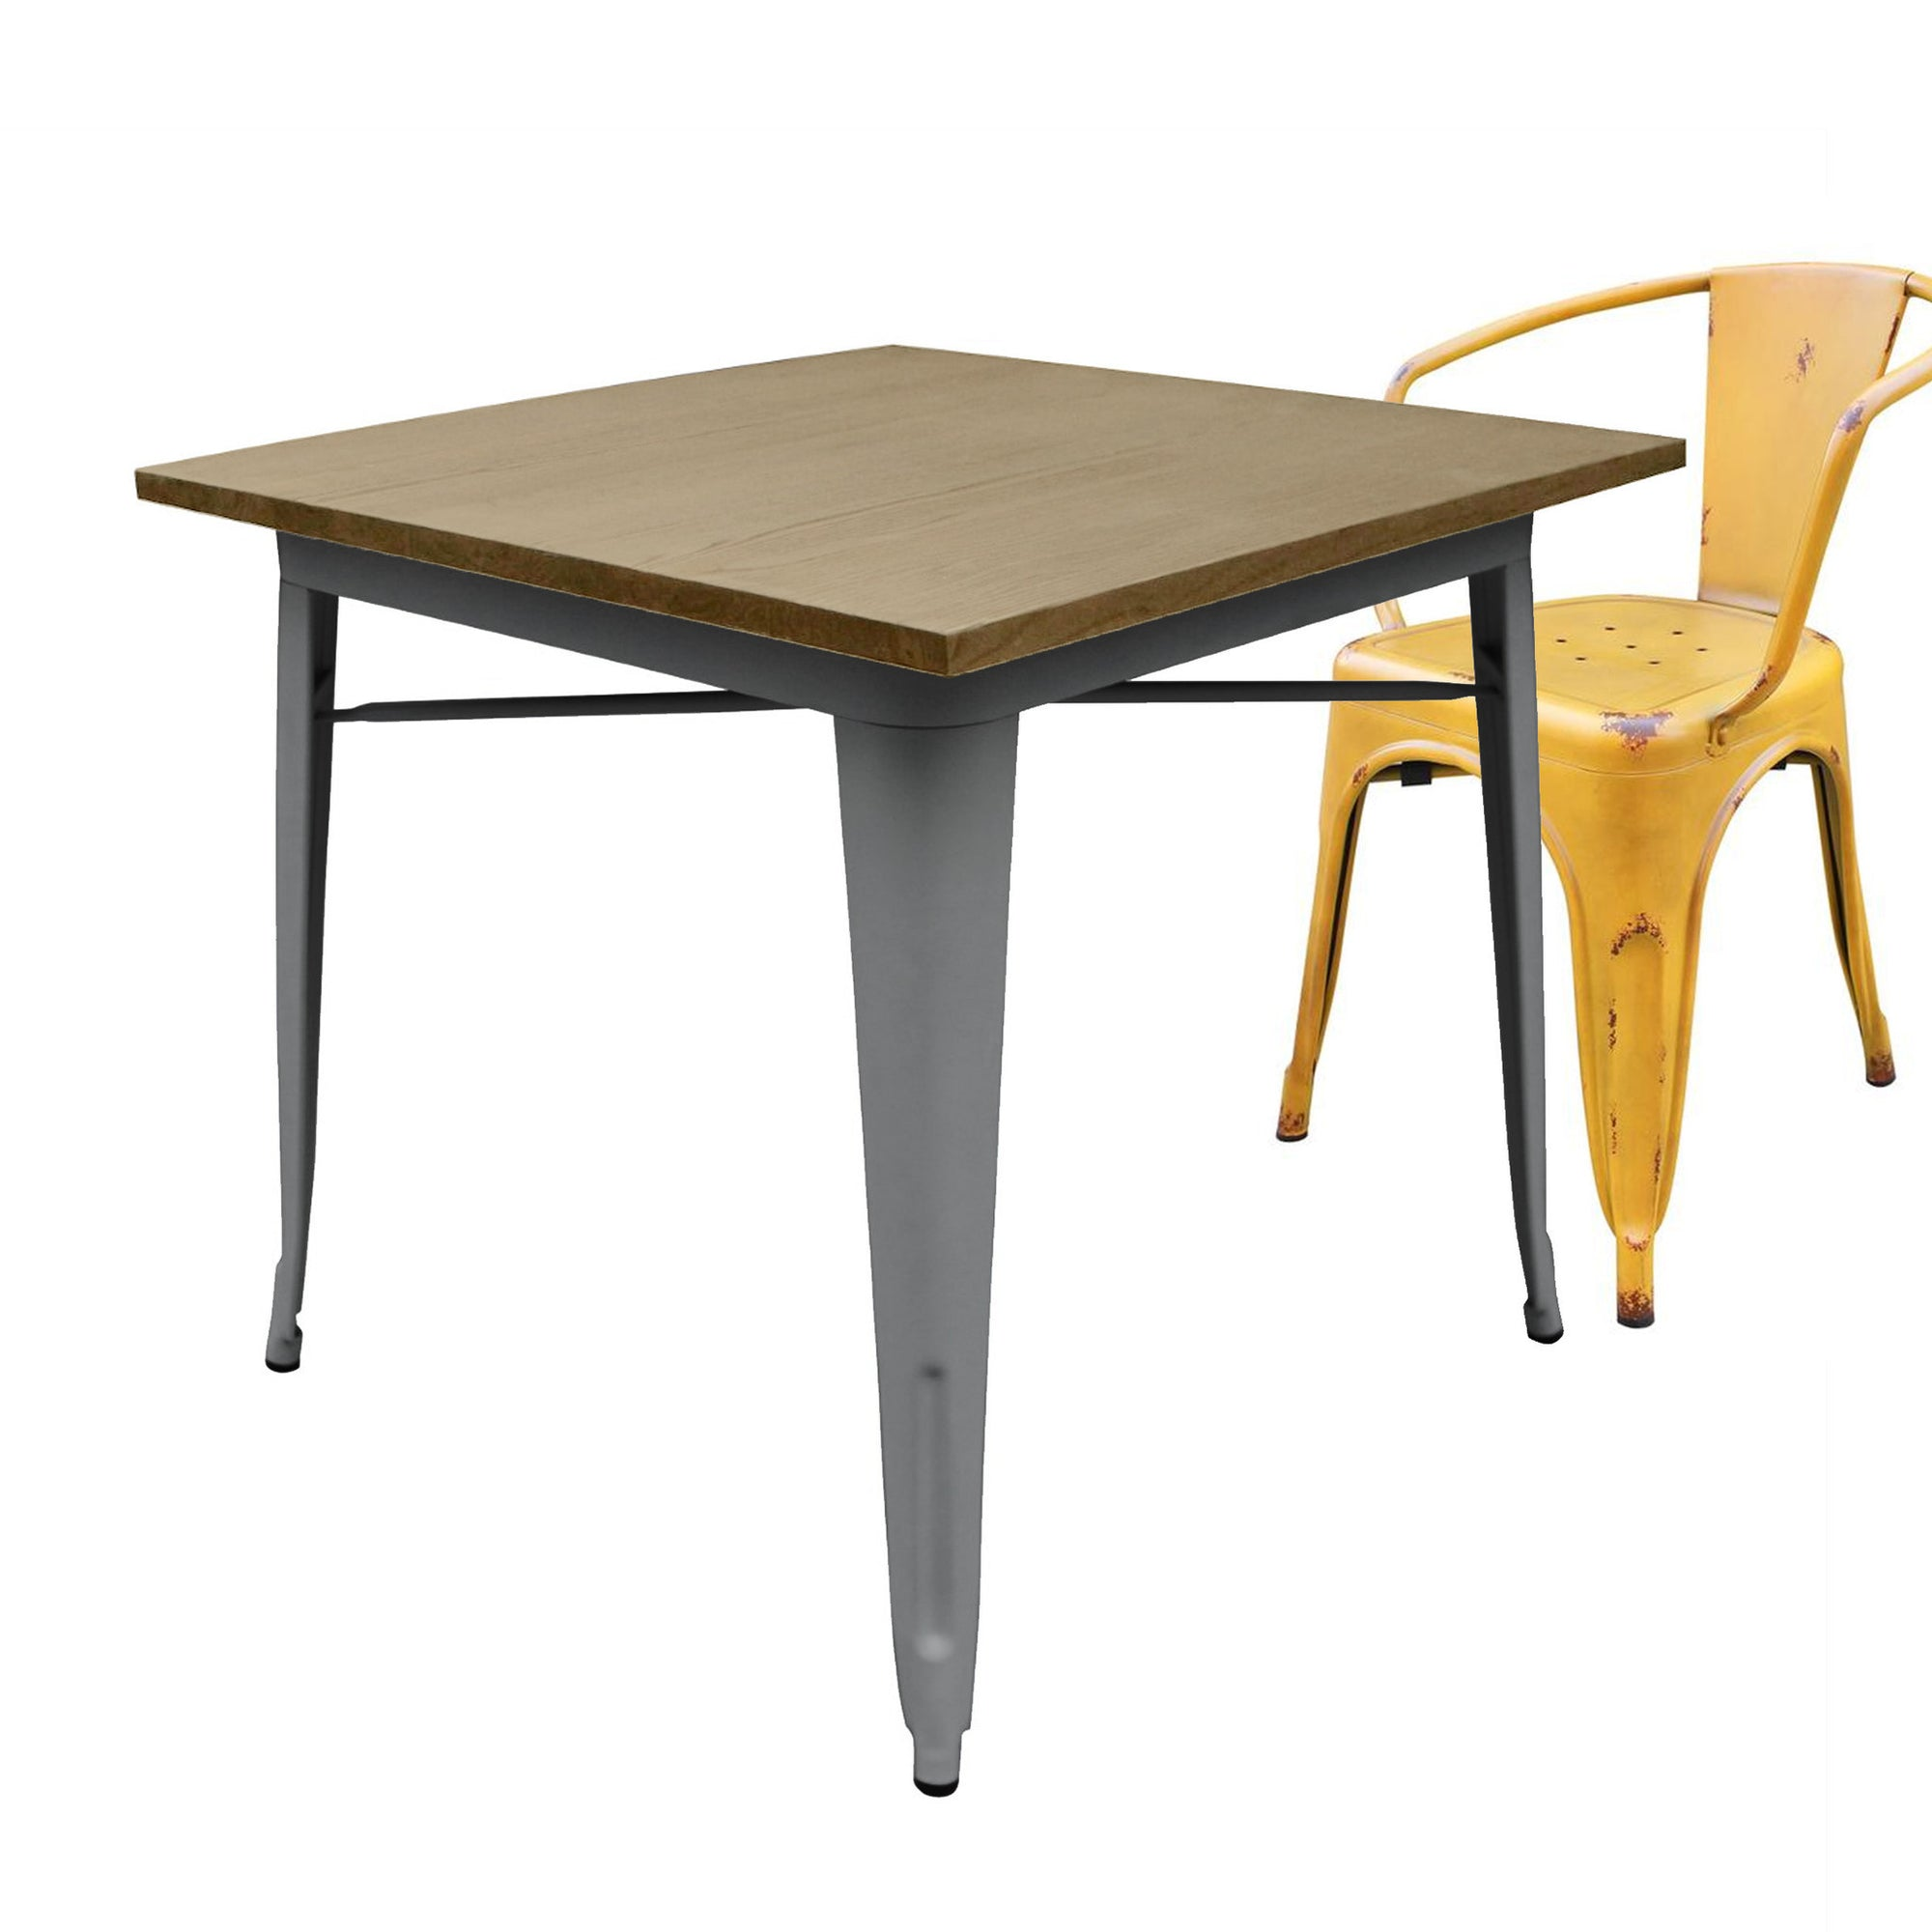 Dinning Table - Industrial Table With Solid Wood Top 80 Cm BPTT01S+N